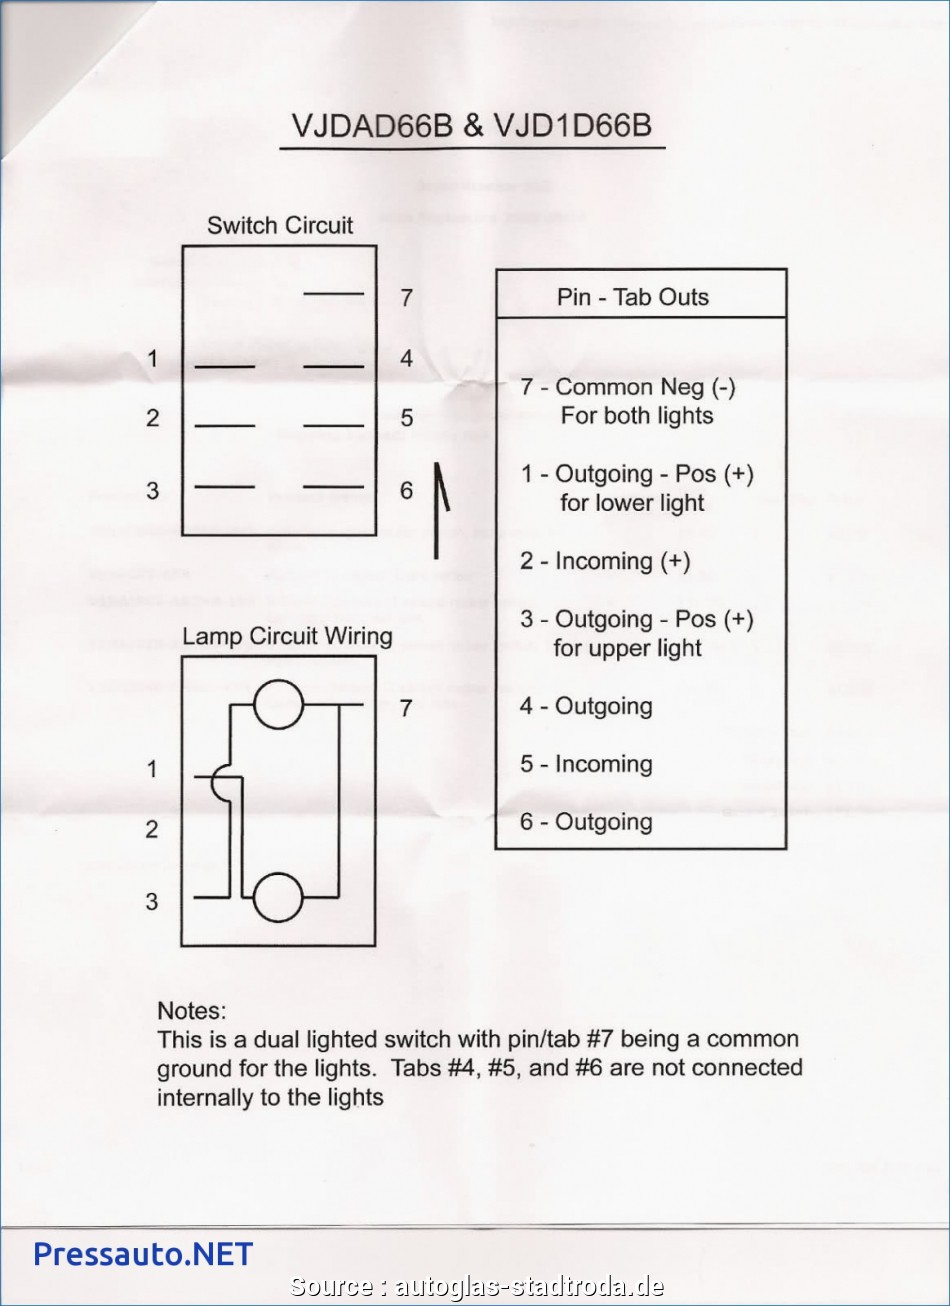 5 Pin Illuminated Rocker Switch Wiring Diagram from static-cdn.imageservice.cloud